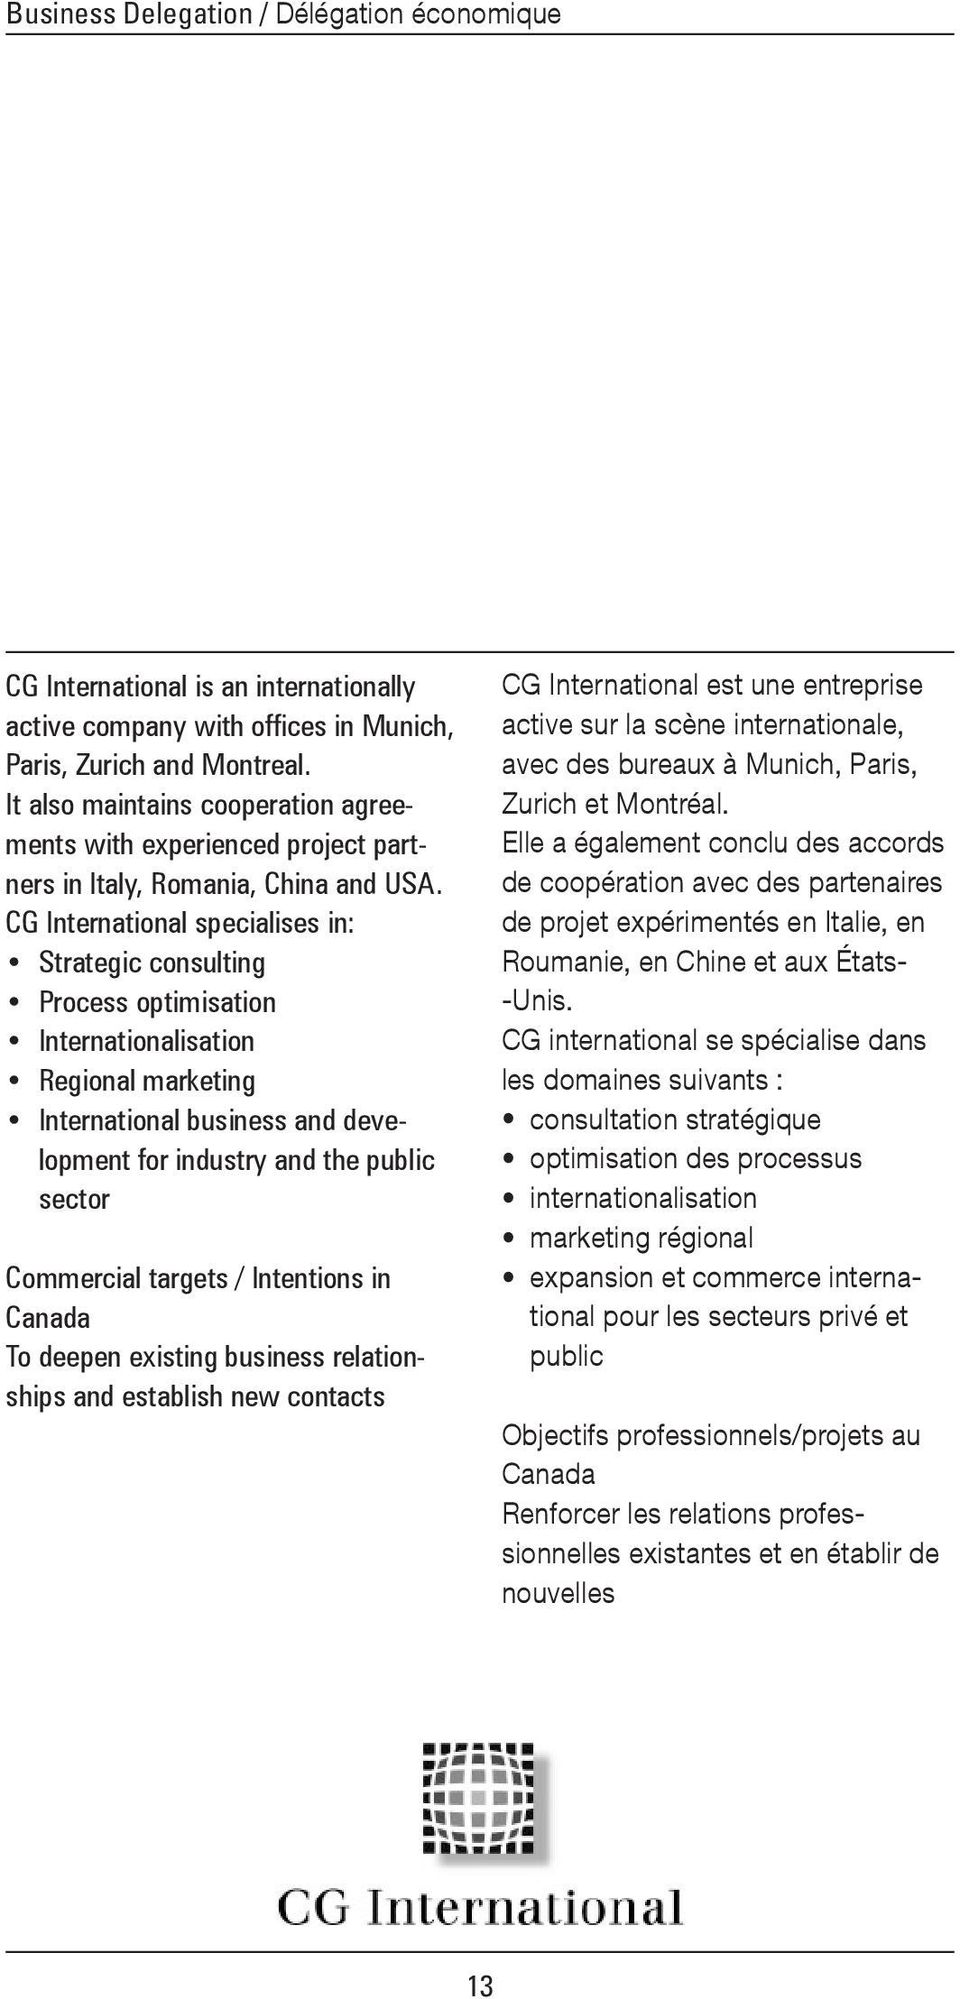 CG International specialises in: Strategic consulting Process optimisation Internationalisation Regional marketing International business and development for industry and the public sector Commercial